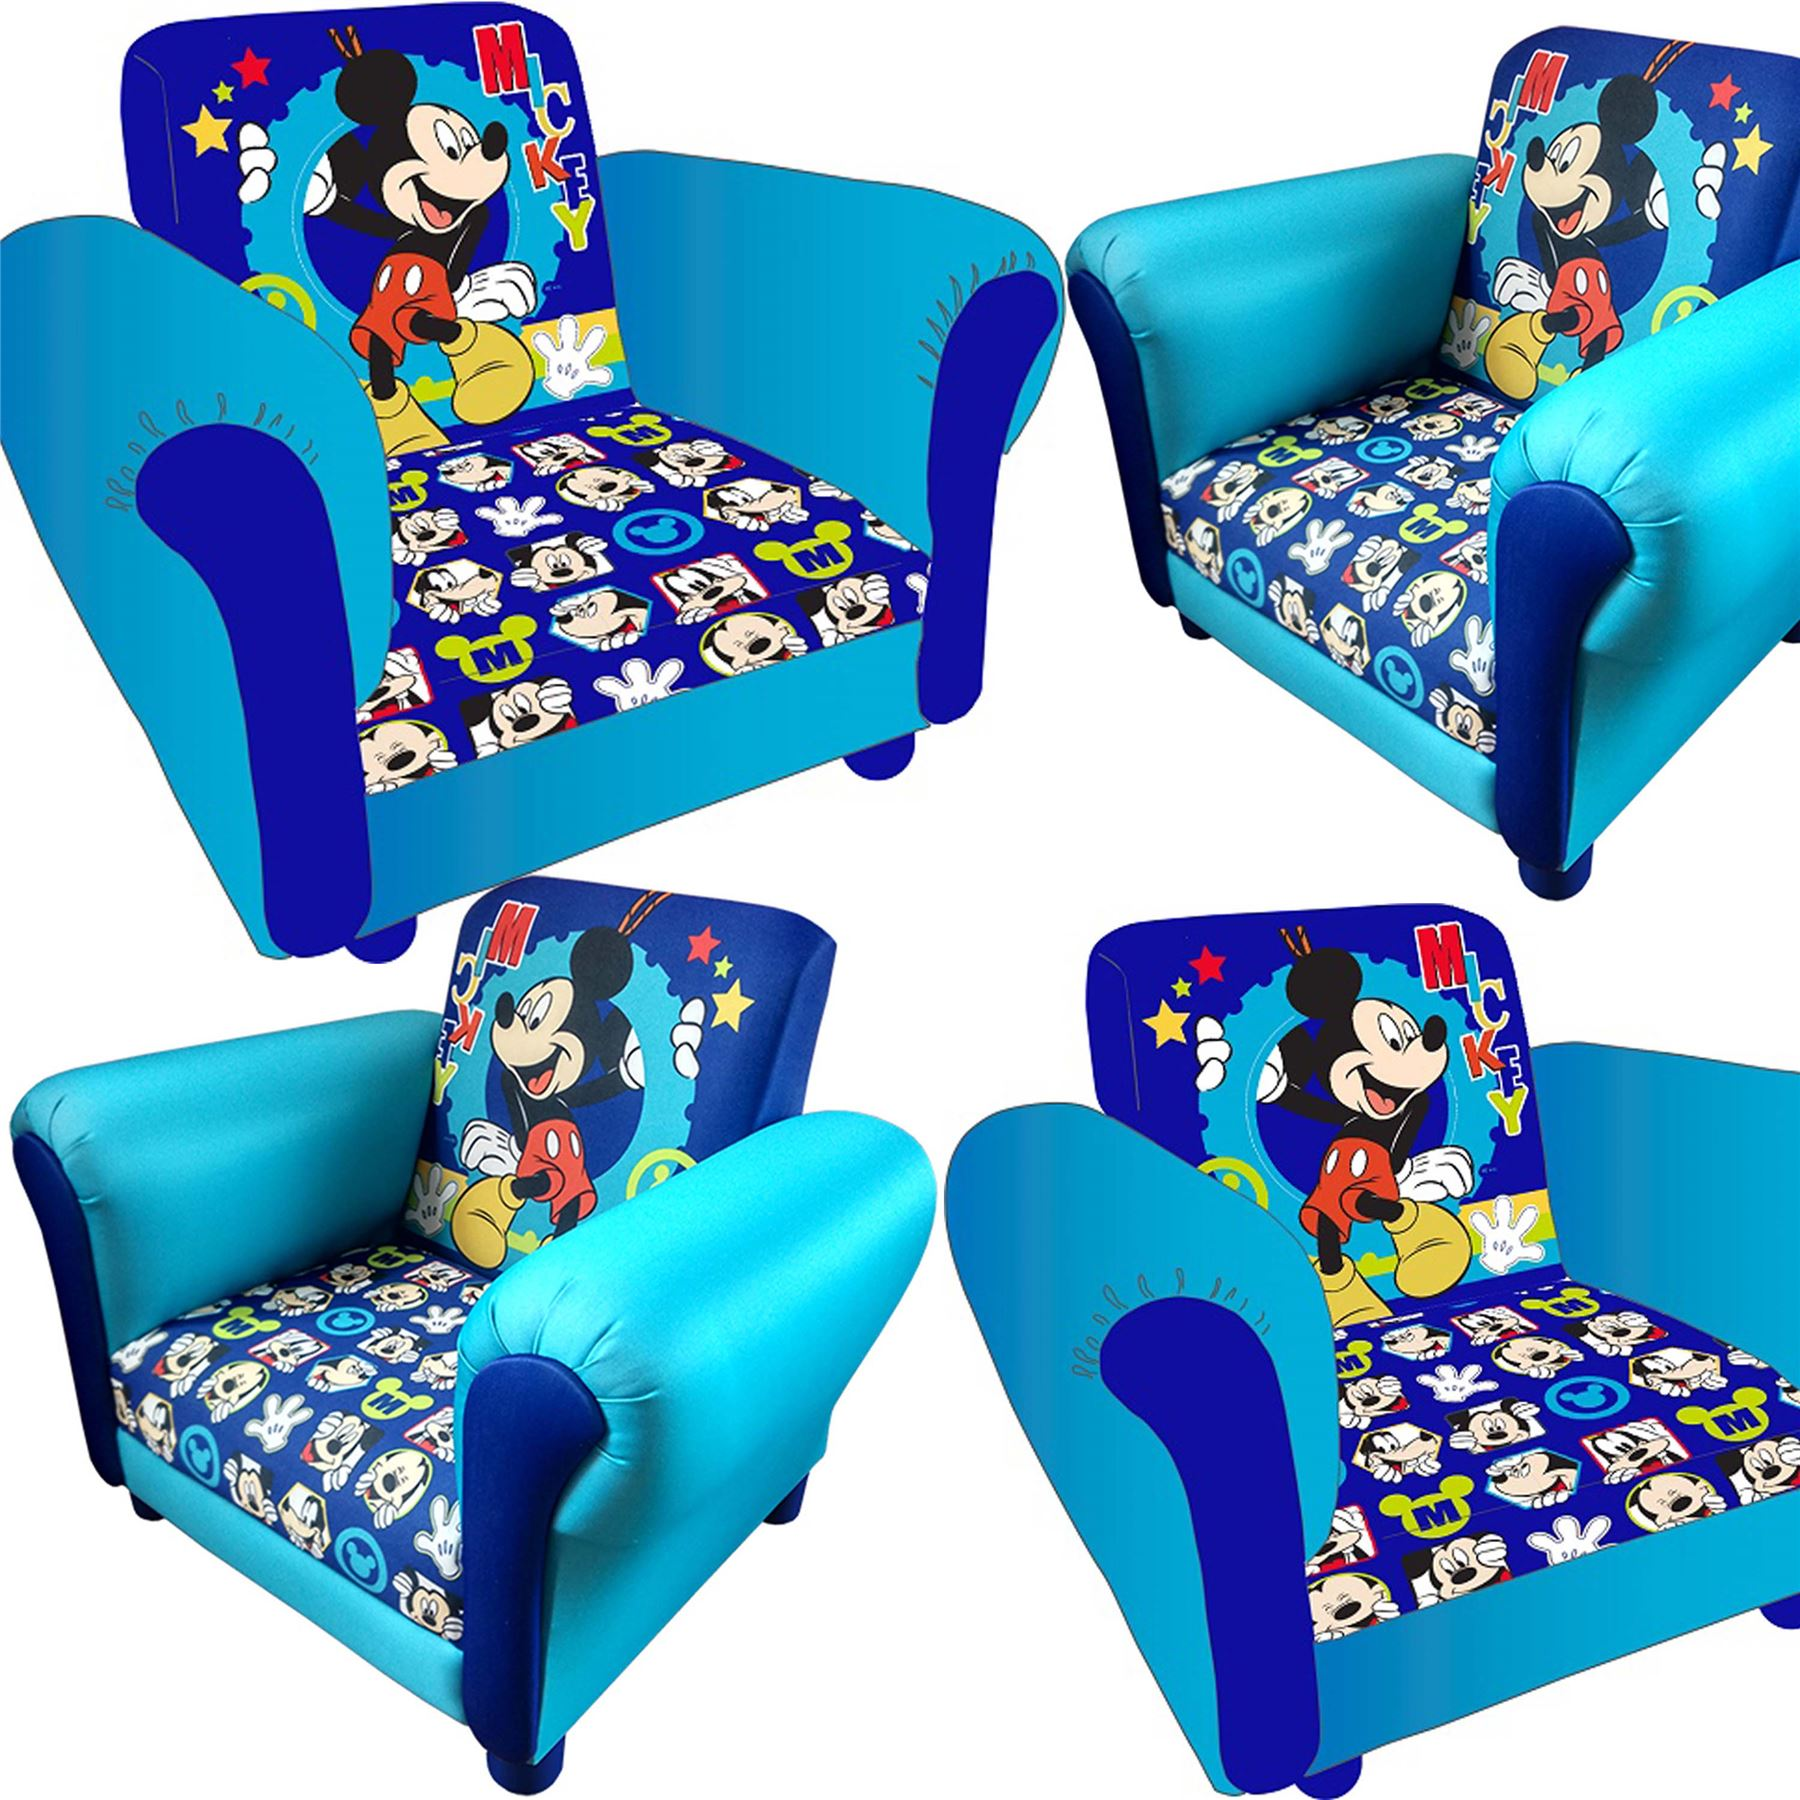 mickey mouse armchair uk baby swing chair qatar childrens cartoon kids childs